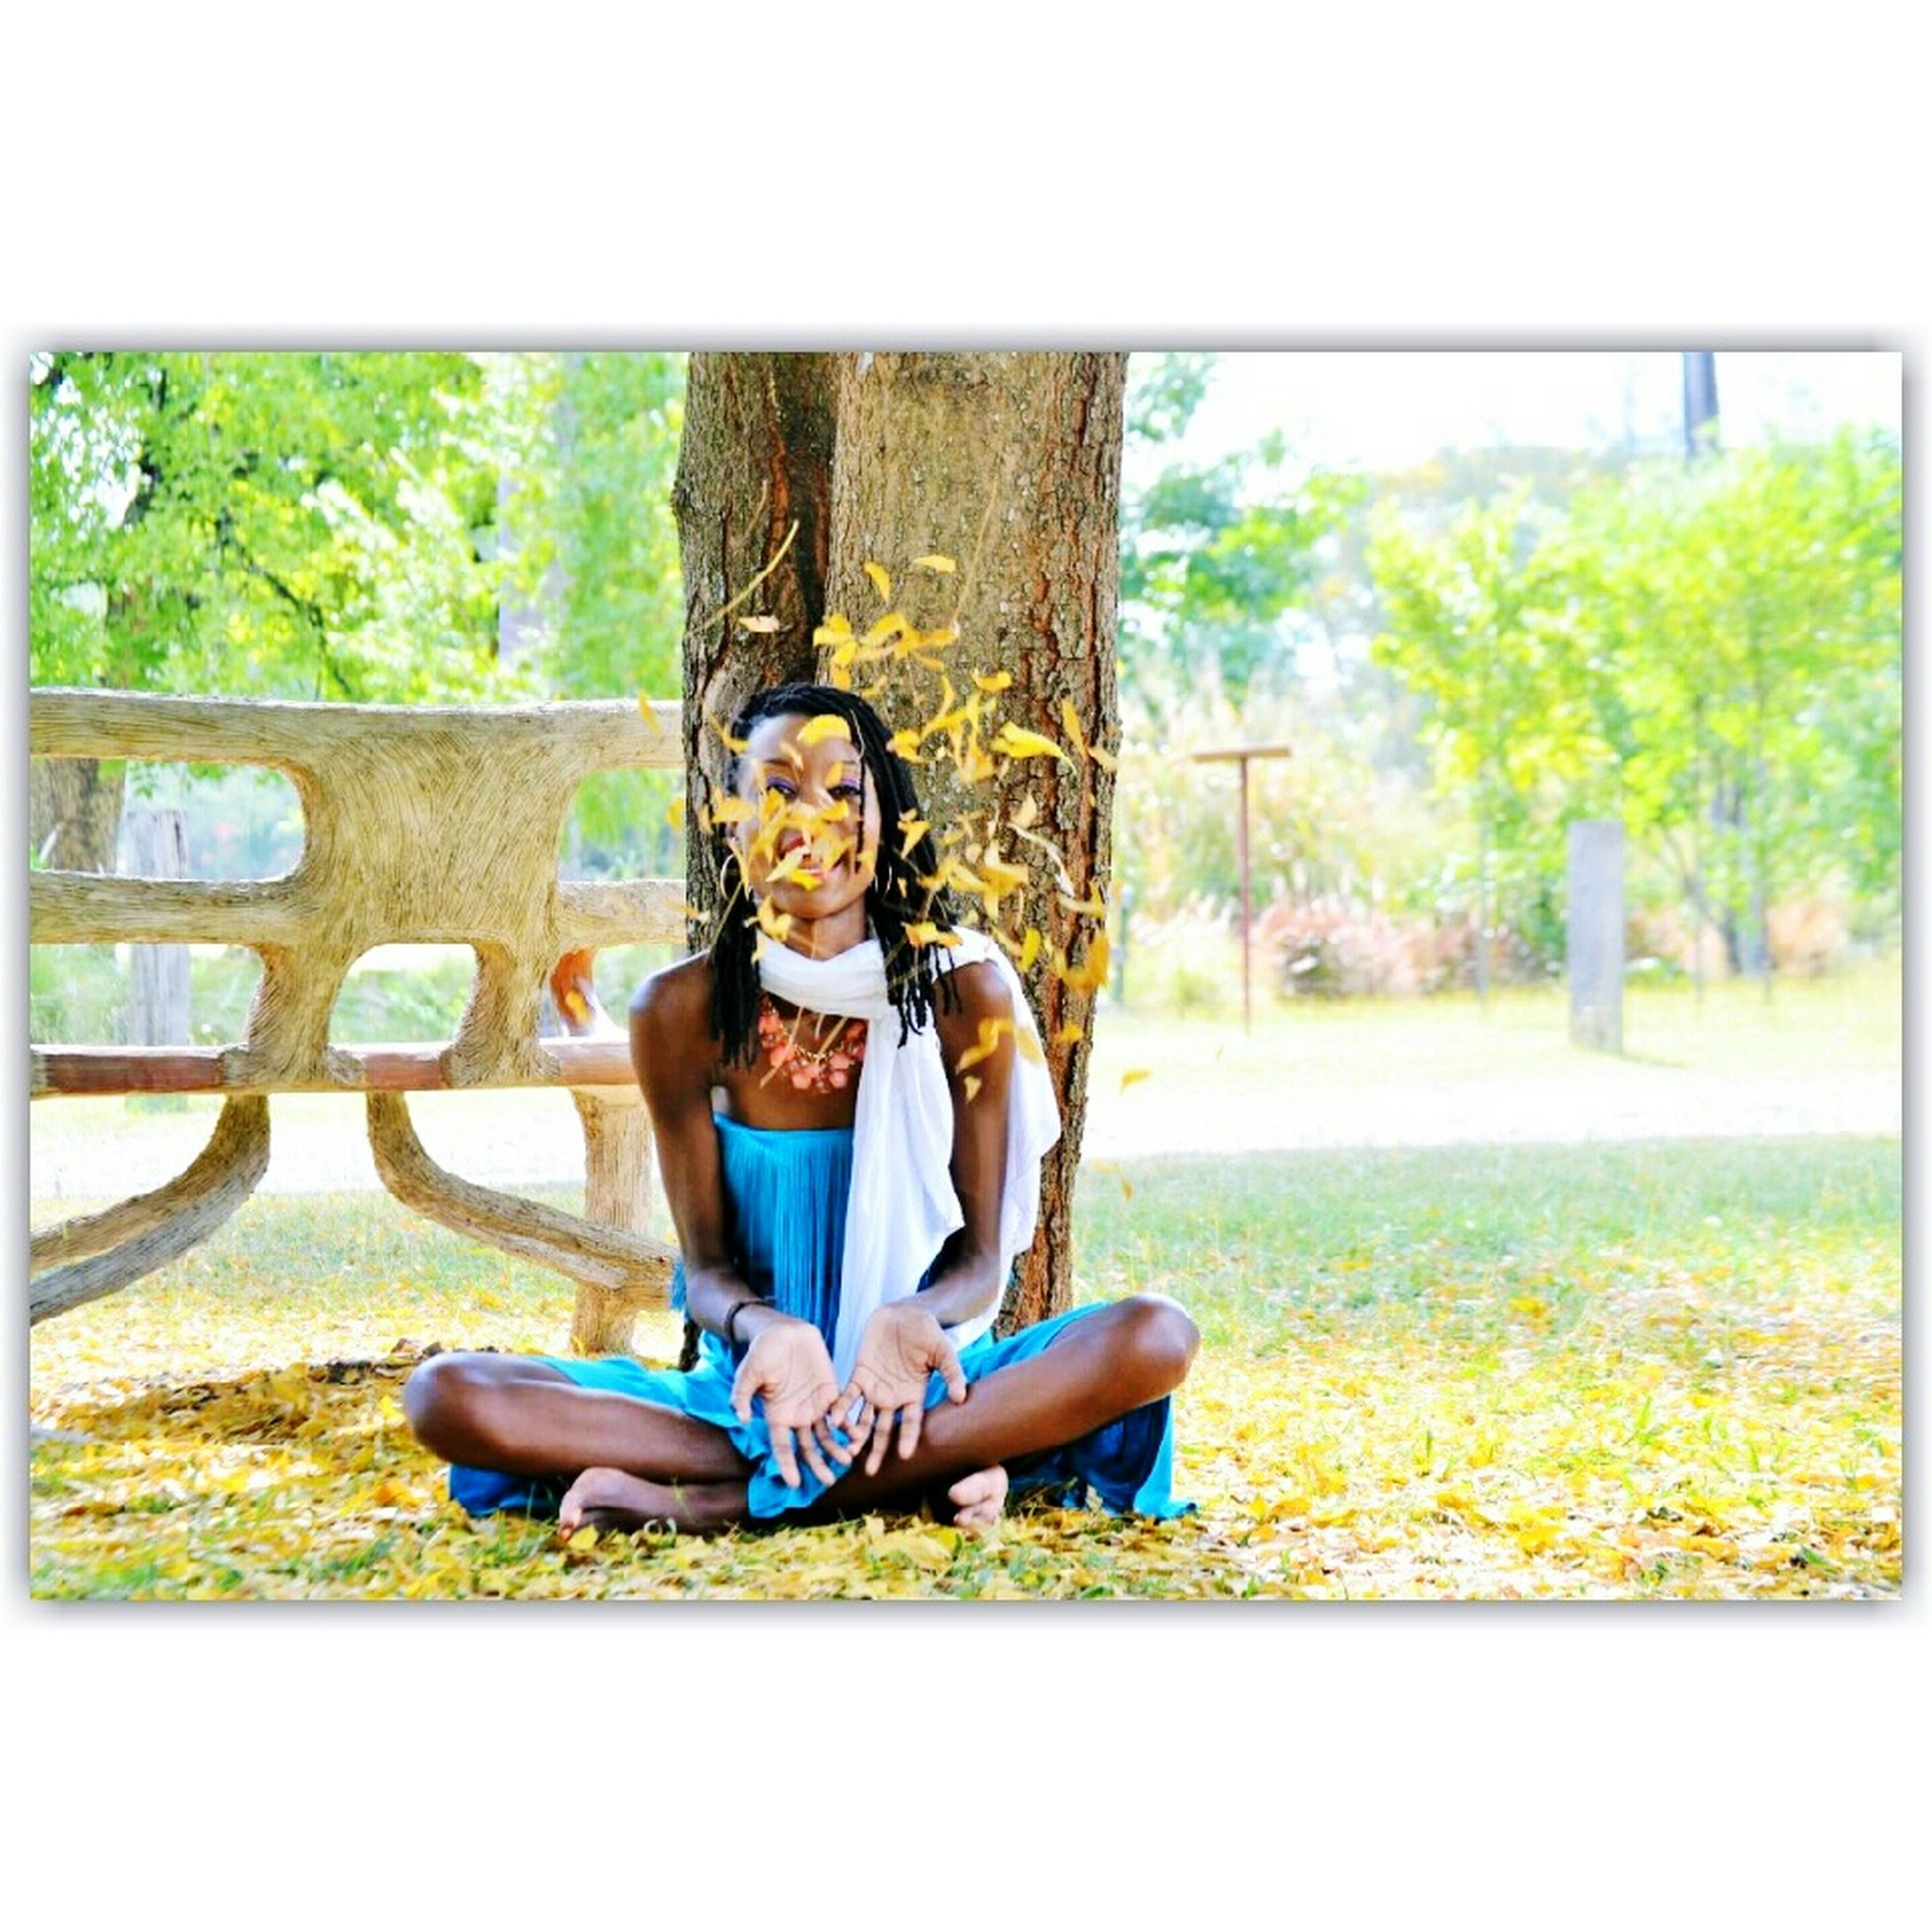 lifestyles, transfer print, sitting, tree, full length, leisure activity, casual clothing, auto post production filter, young adult, young women, park - man made space, relaxation, grass, person, standing, field, park